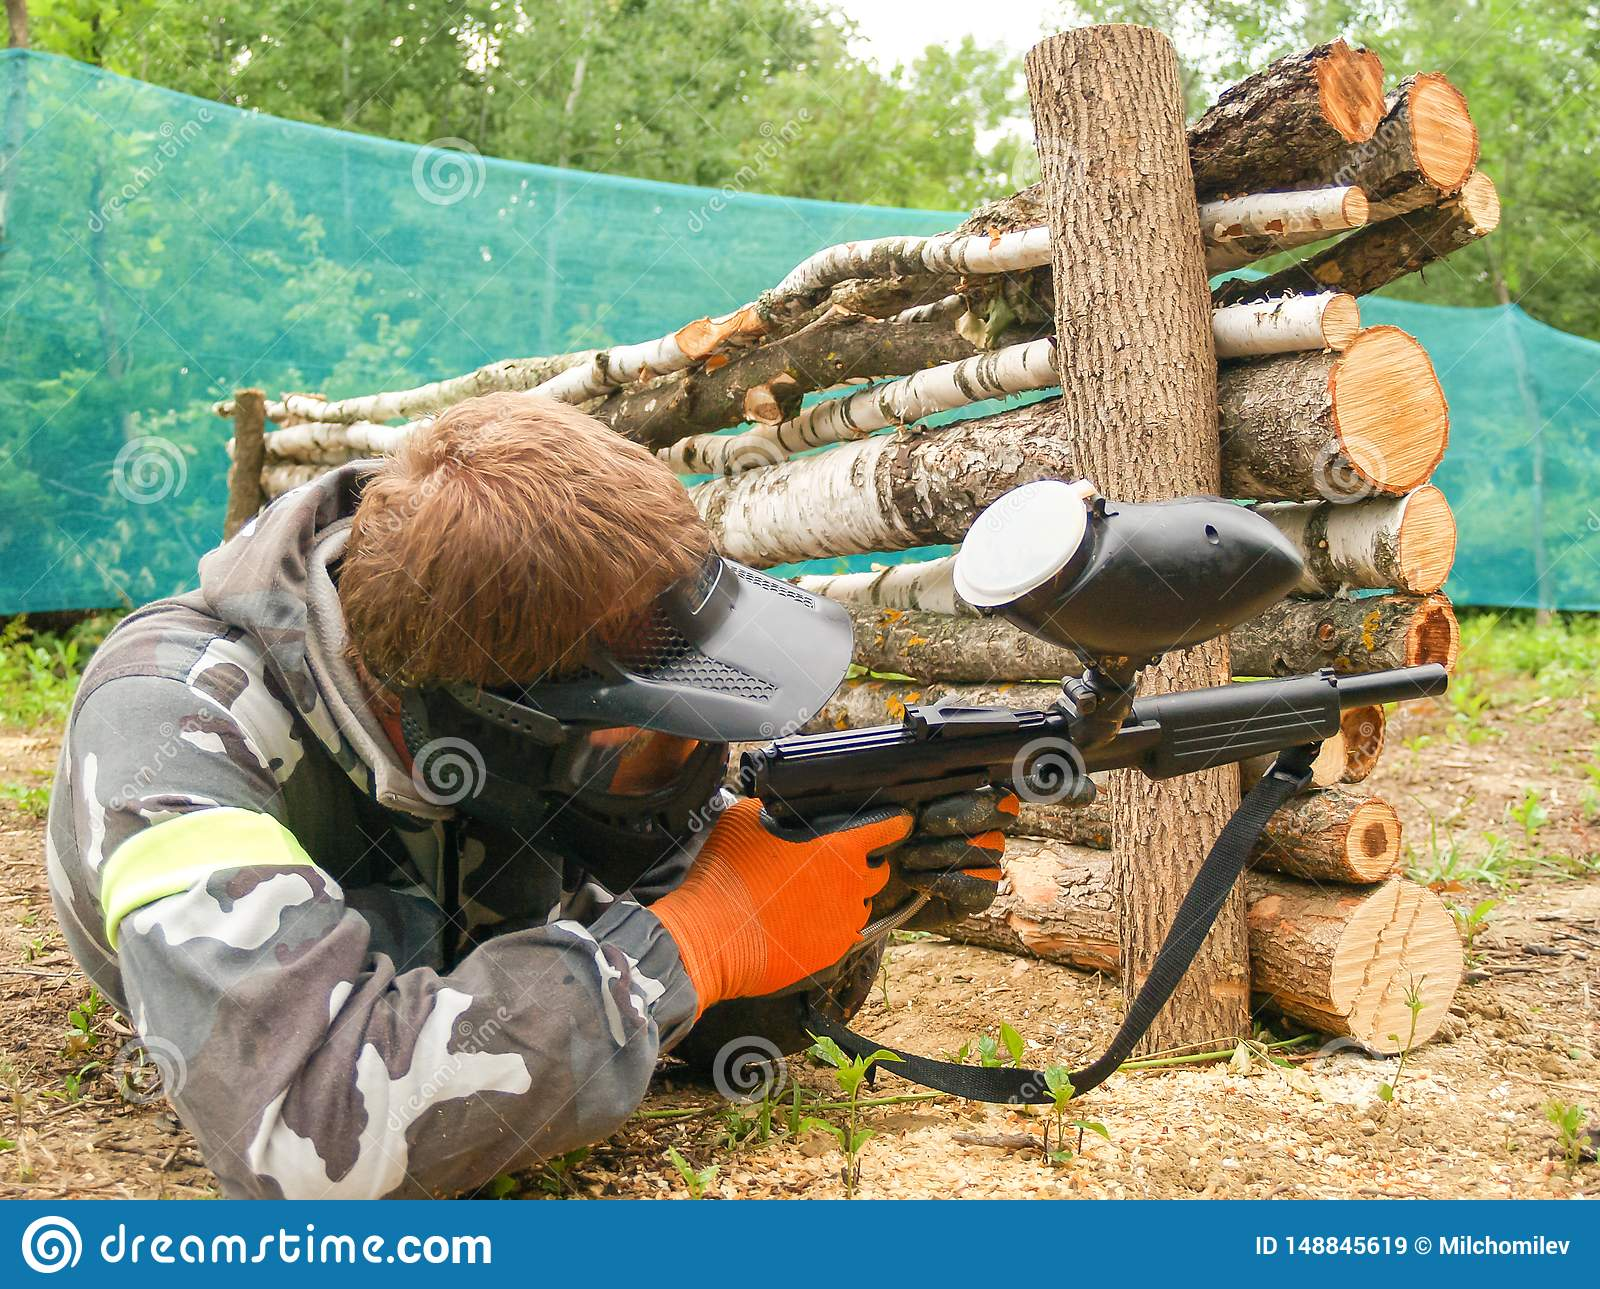 A paintball player who is ready to shoot from hiding. Lying on the ground and shooting